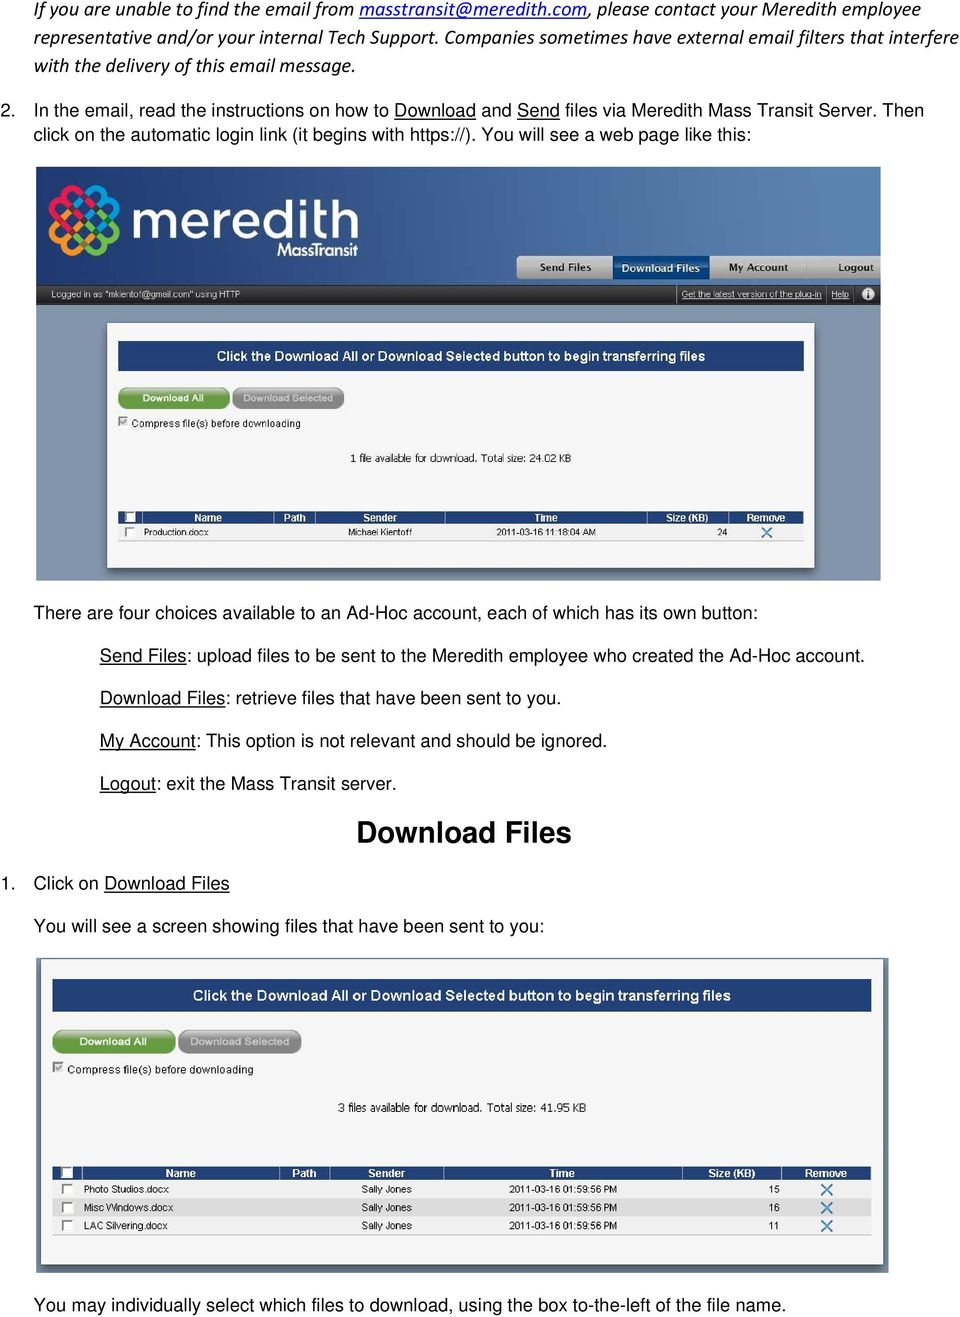 Meredith Mass Transit Web Client User Guide For Ad Hoc Accounts - PDF